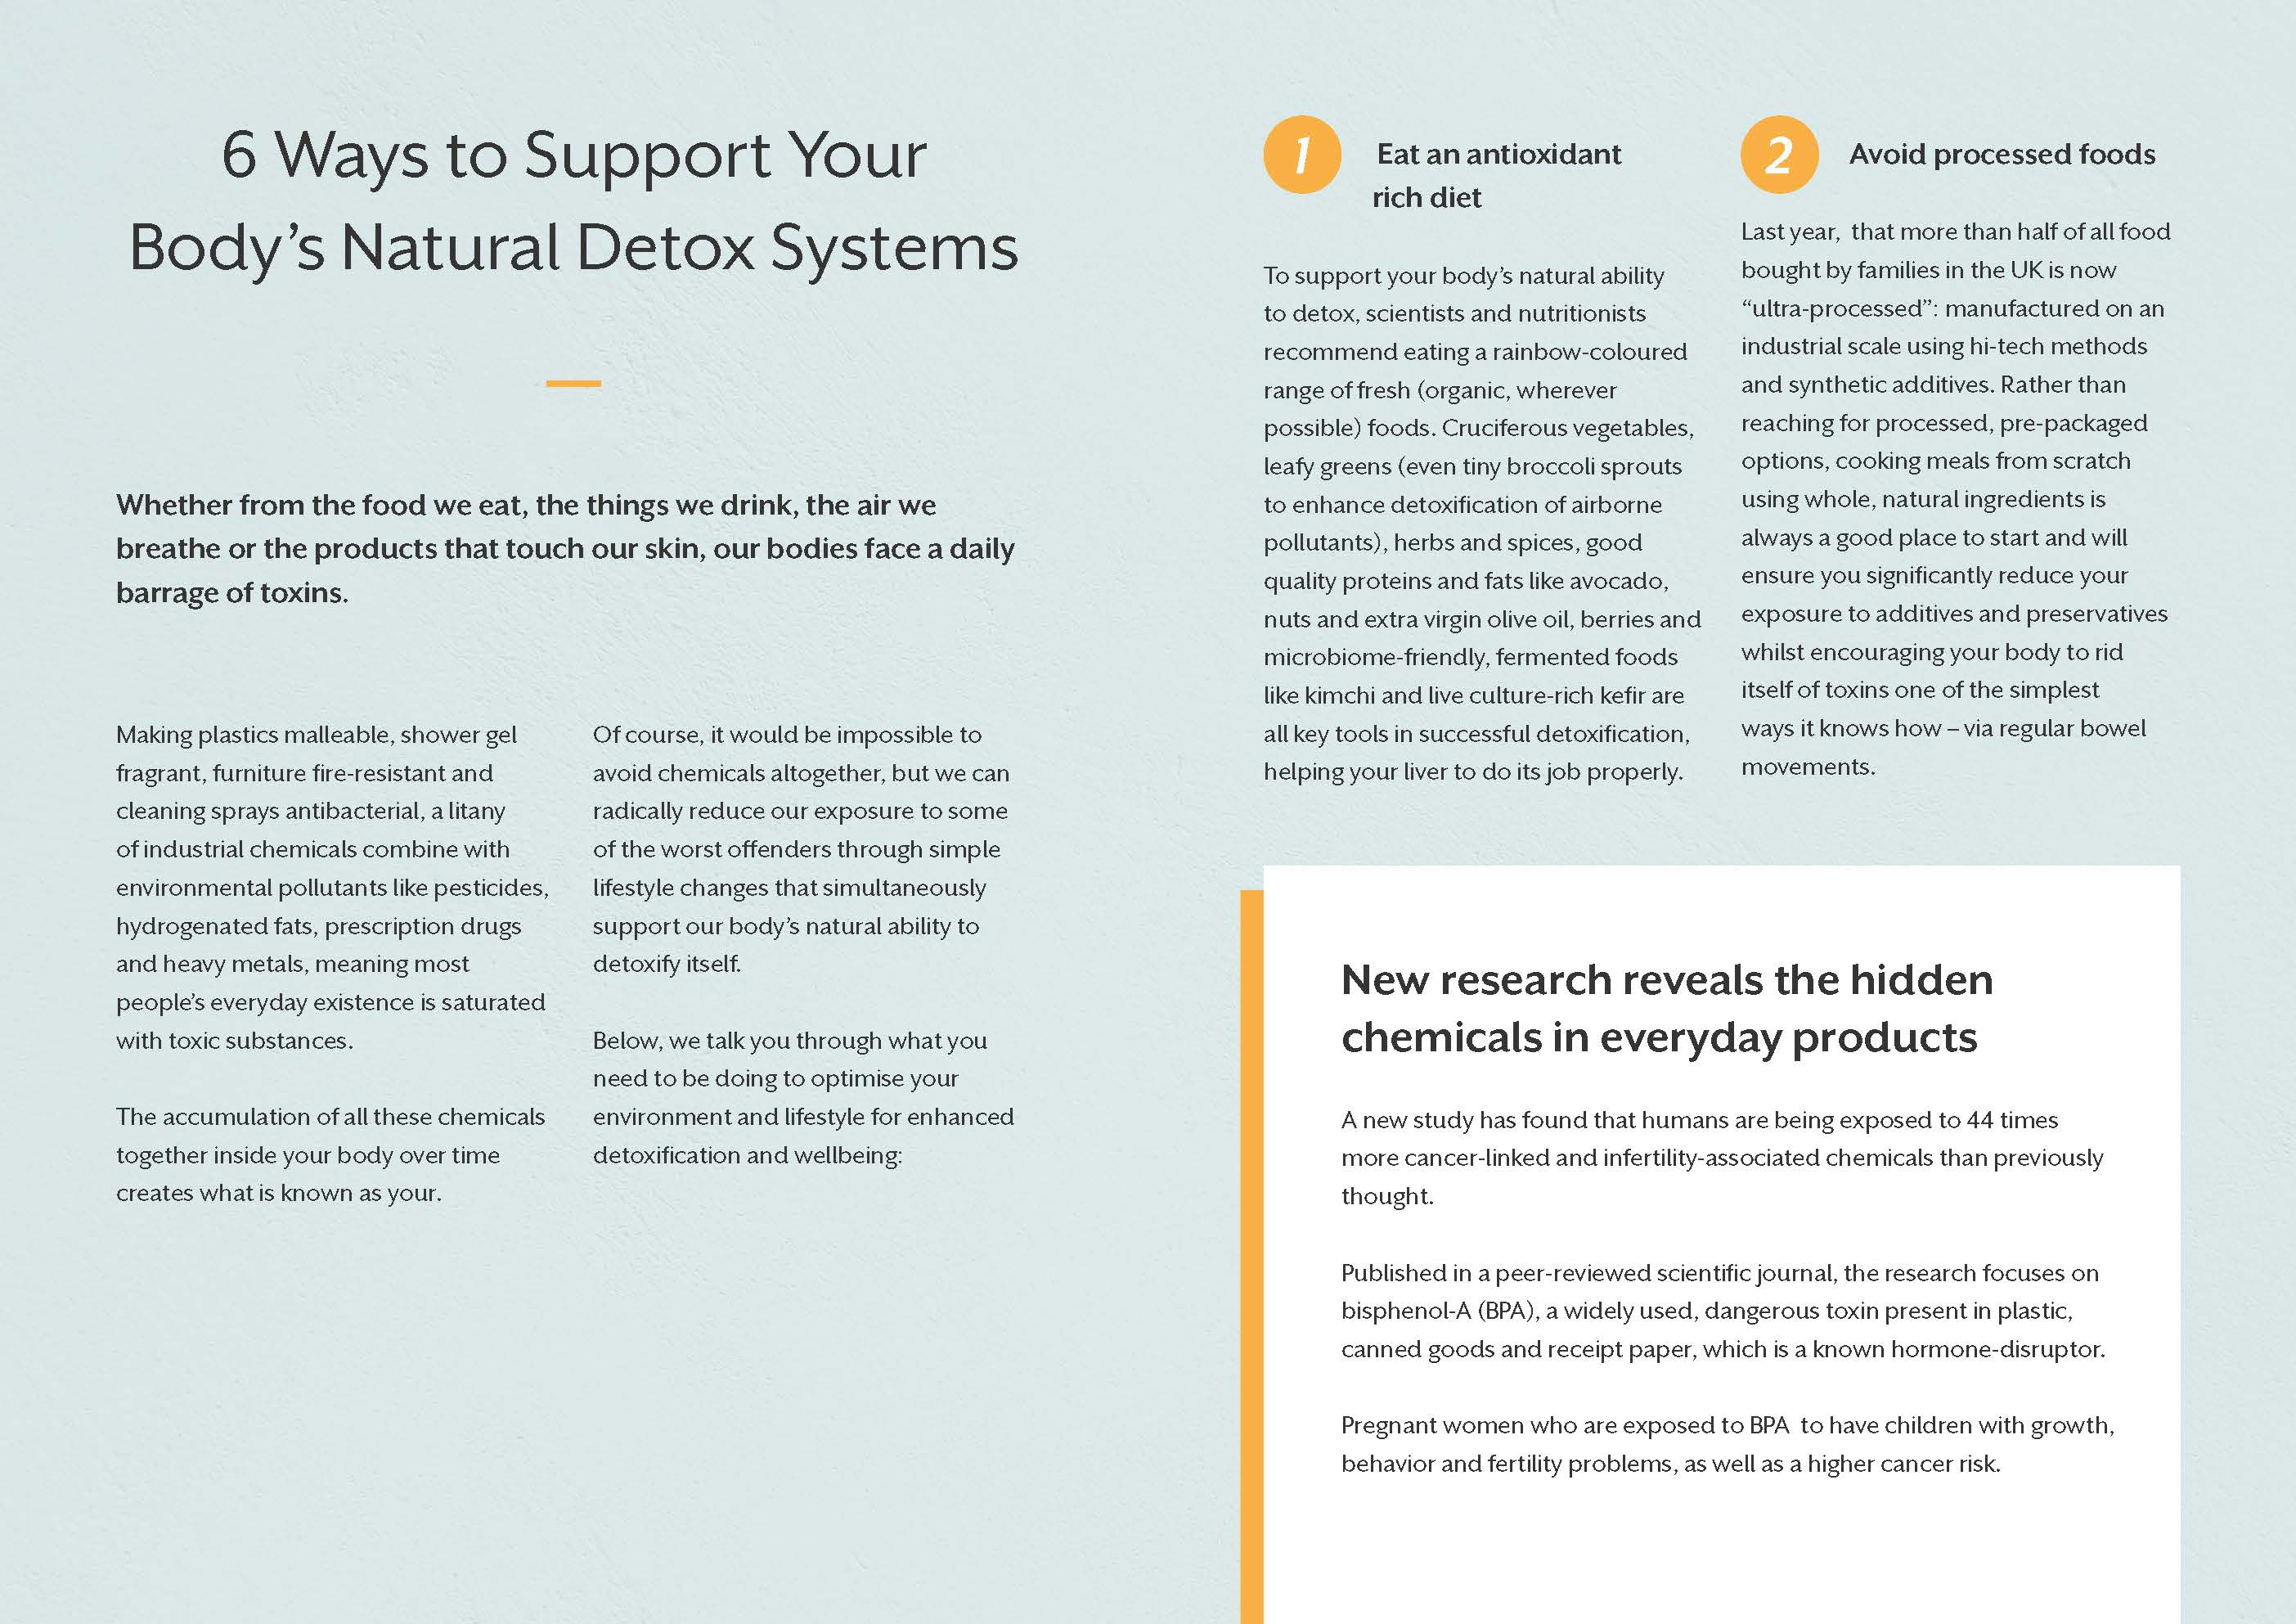 6 Ways to Support Your Body's Natural Detox Systems